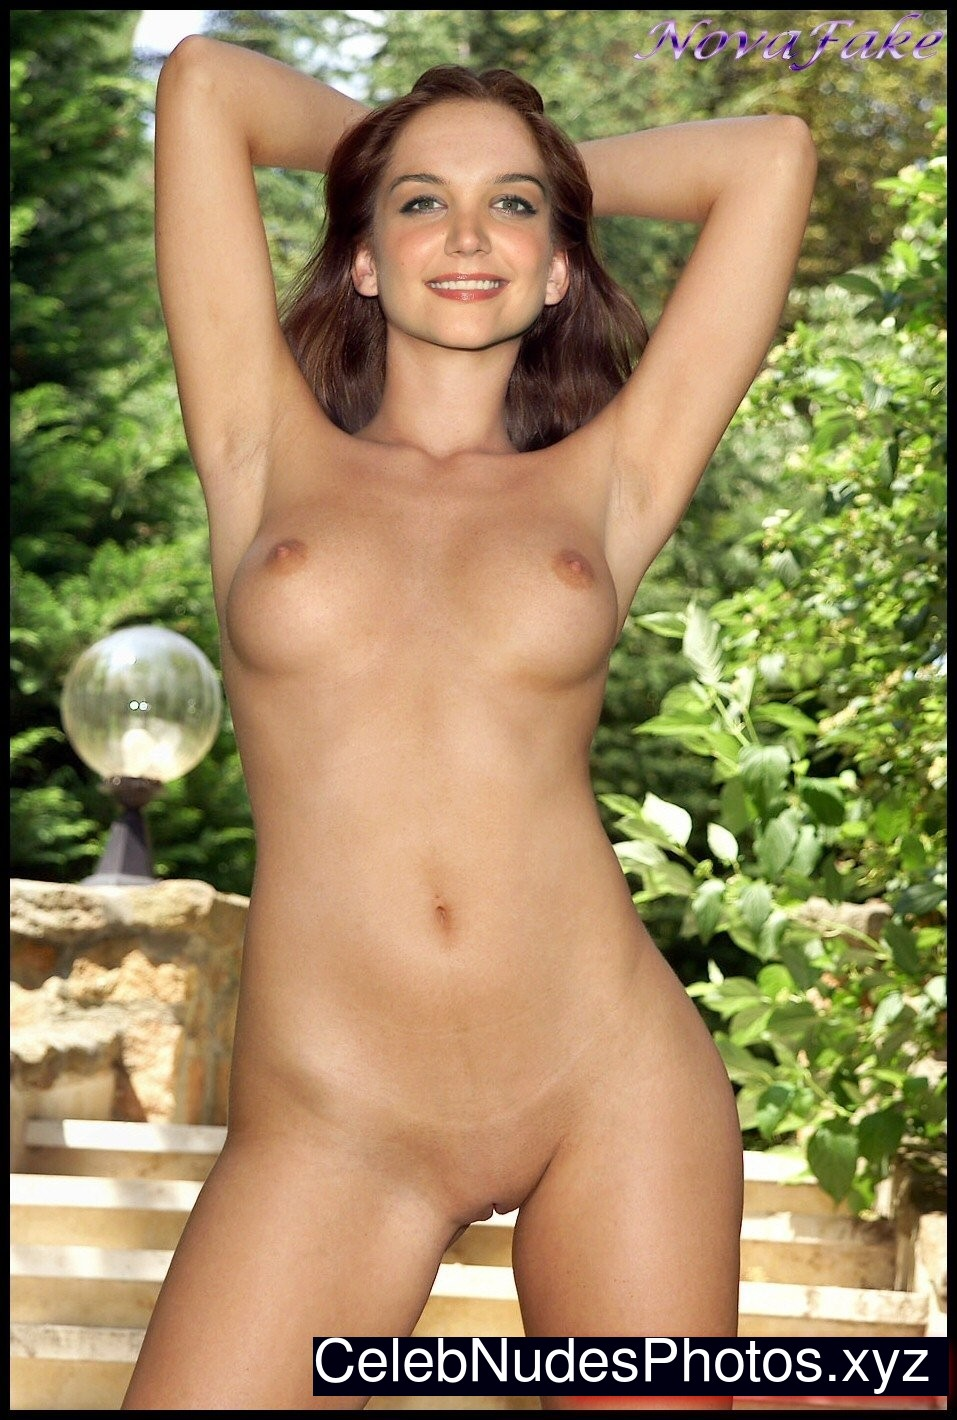 Lady katie holmes nude video yeah... Soooo